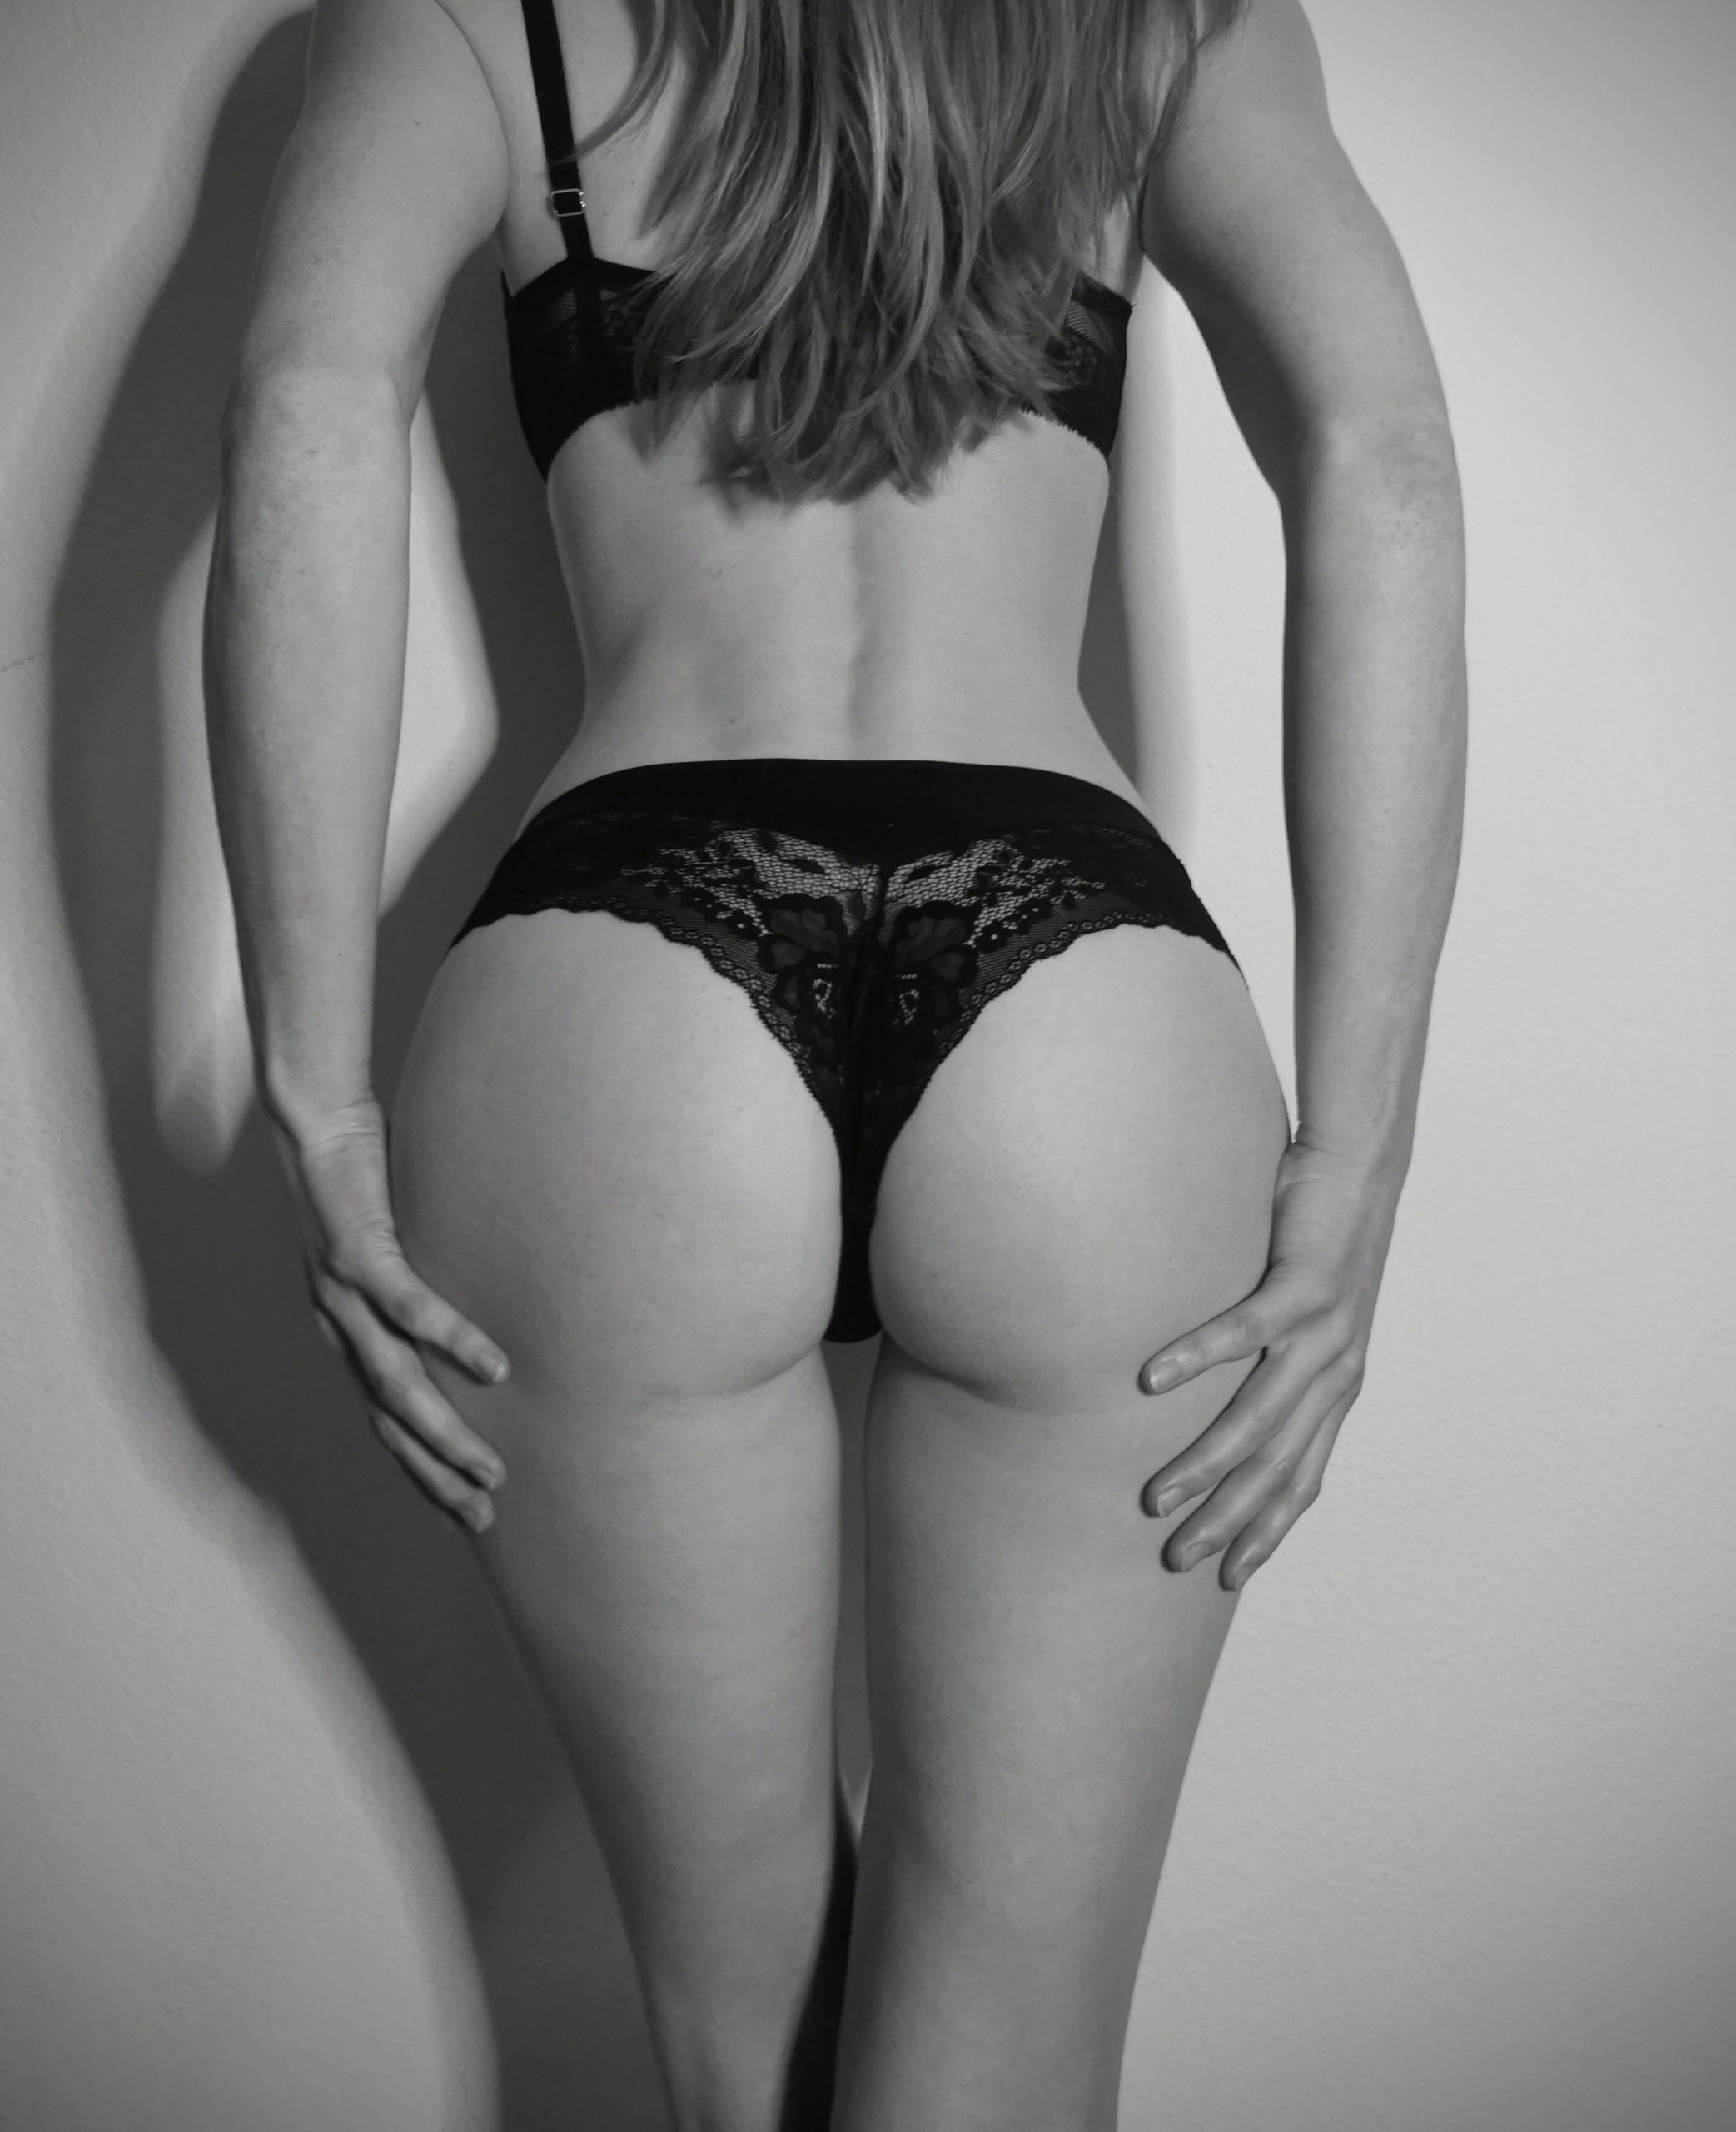 A petite ass a day, keeps the doctor away ;)